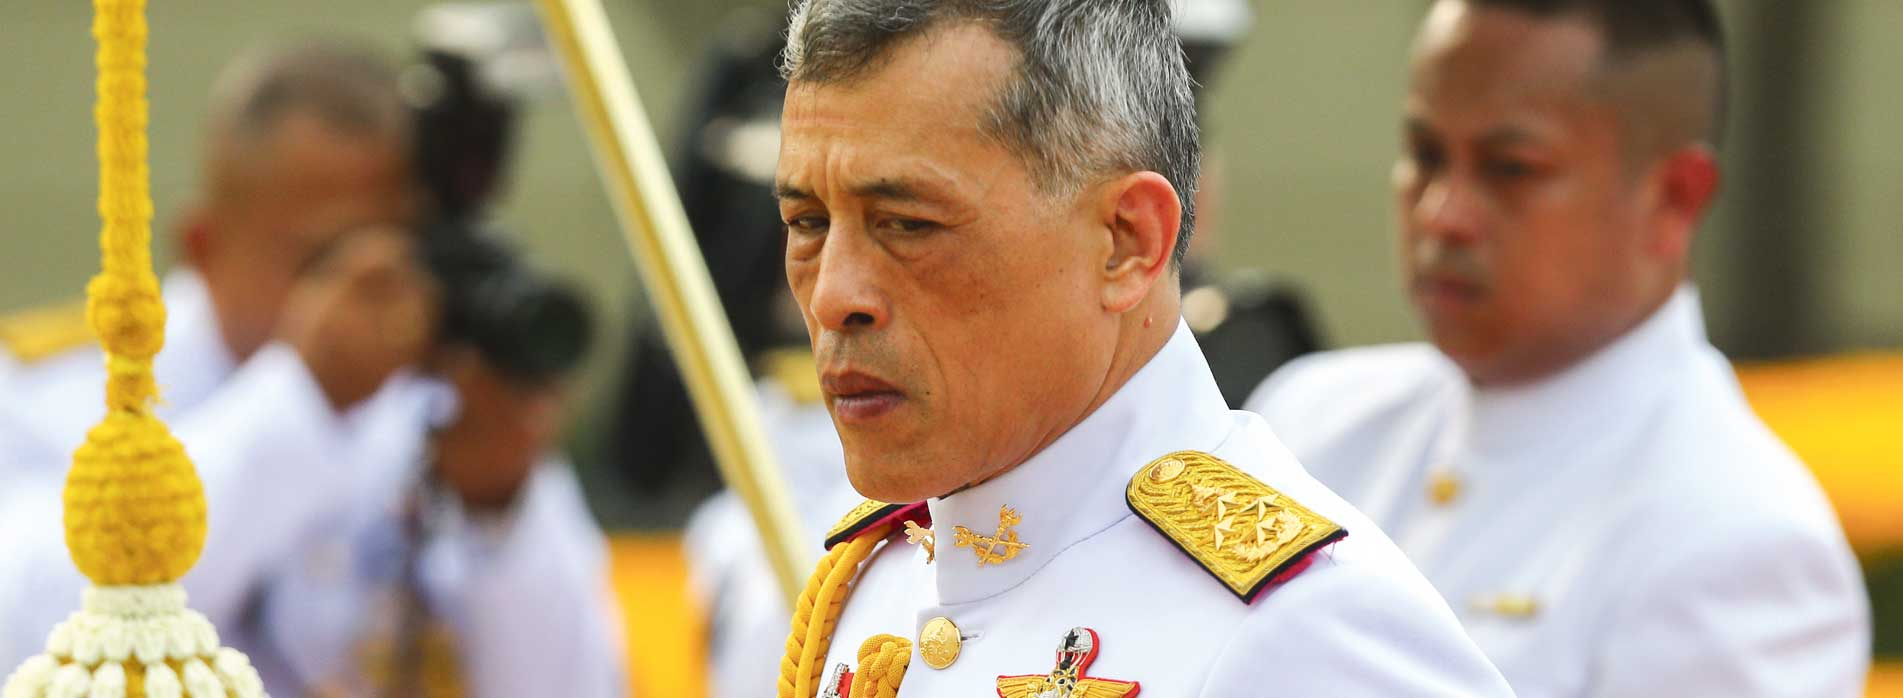 Thailand's chance to reset ties with forces